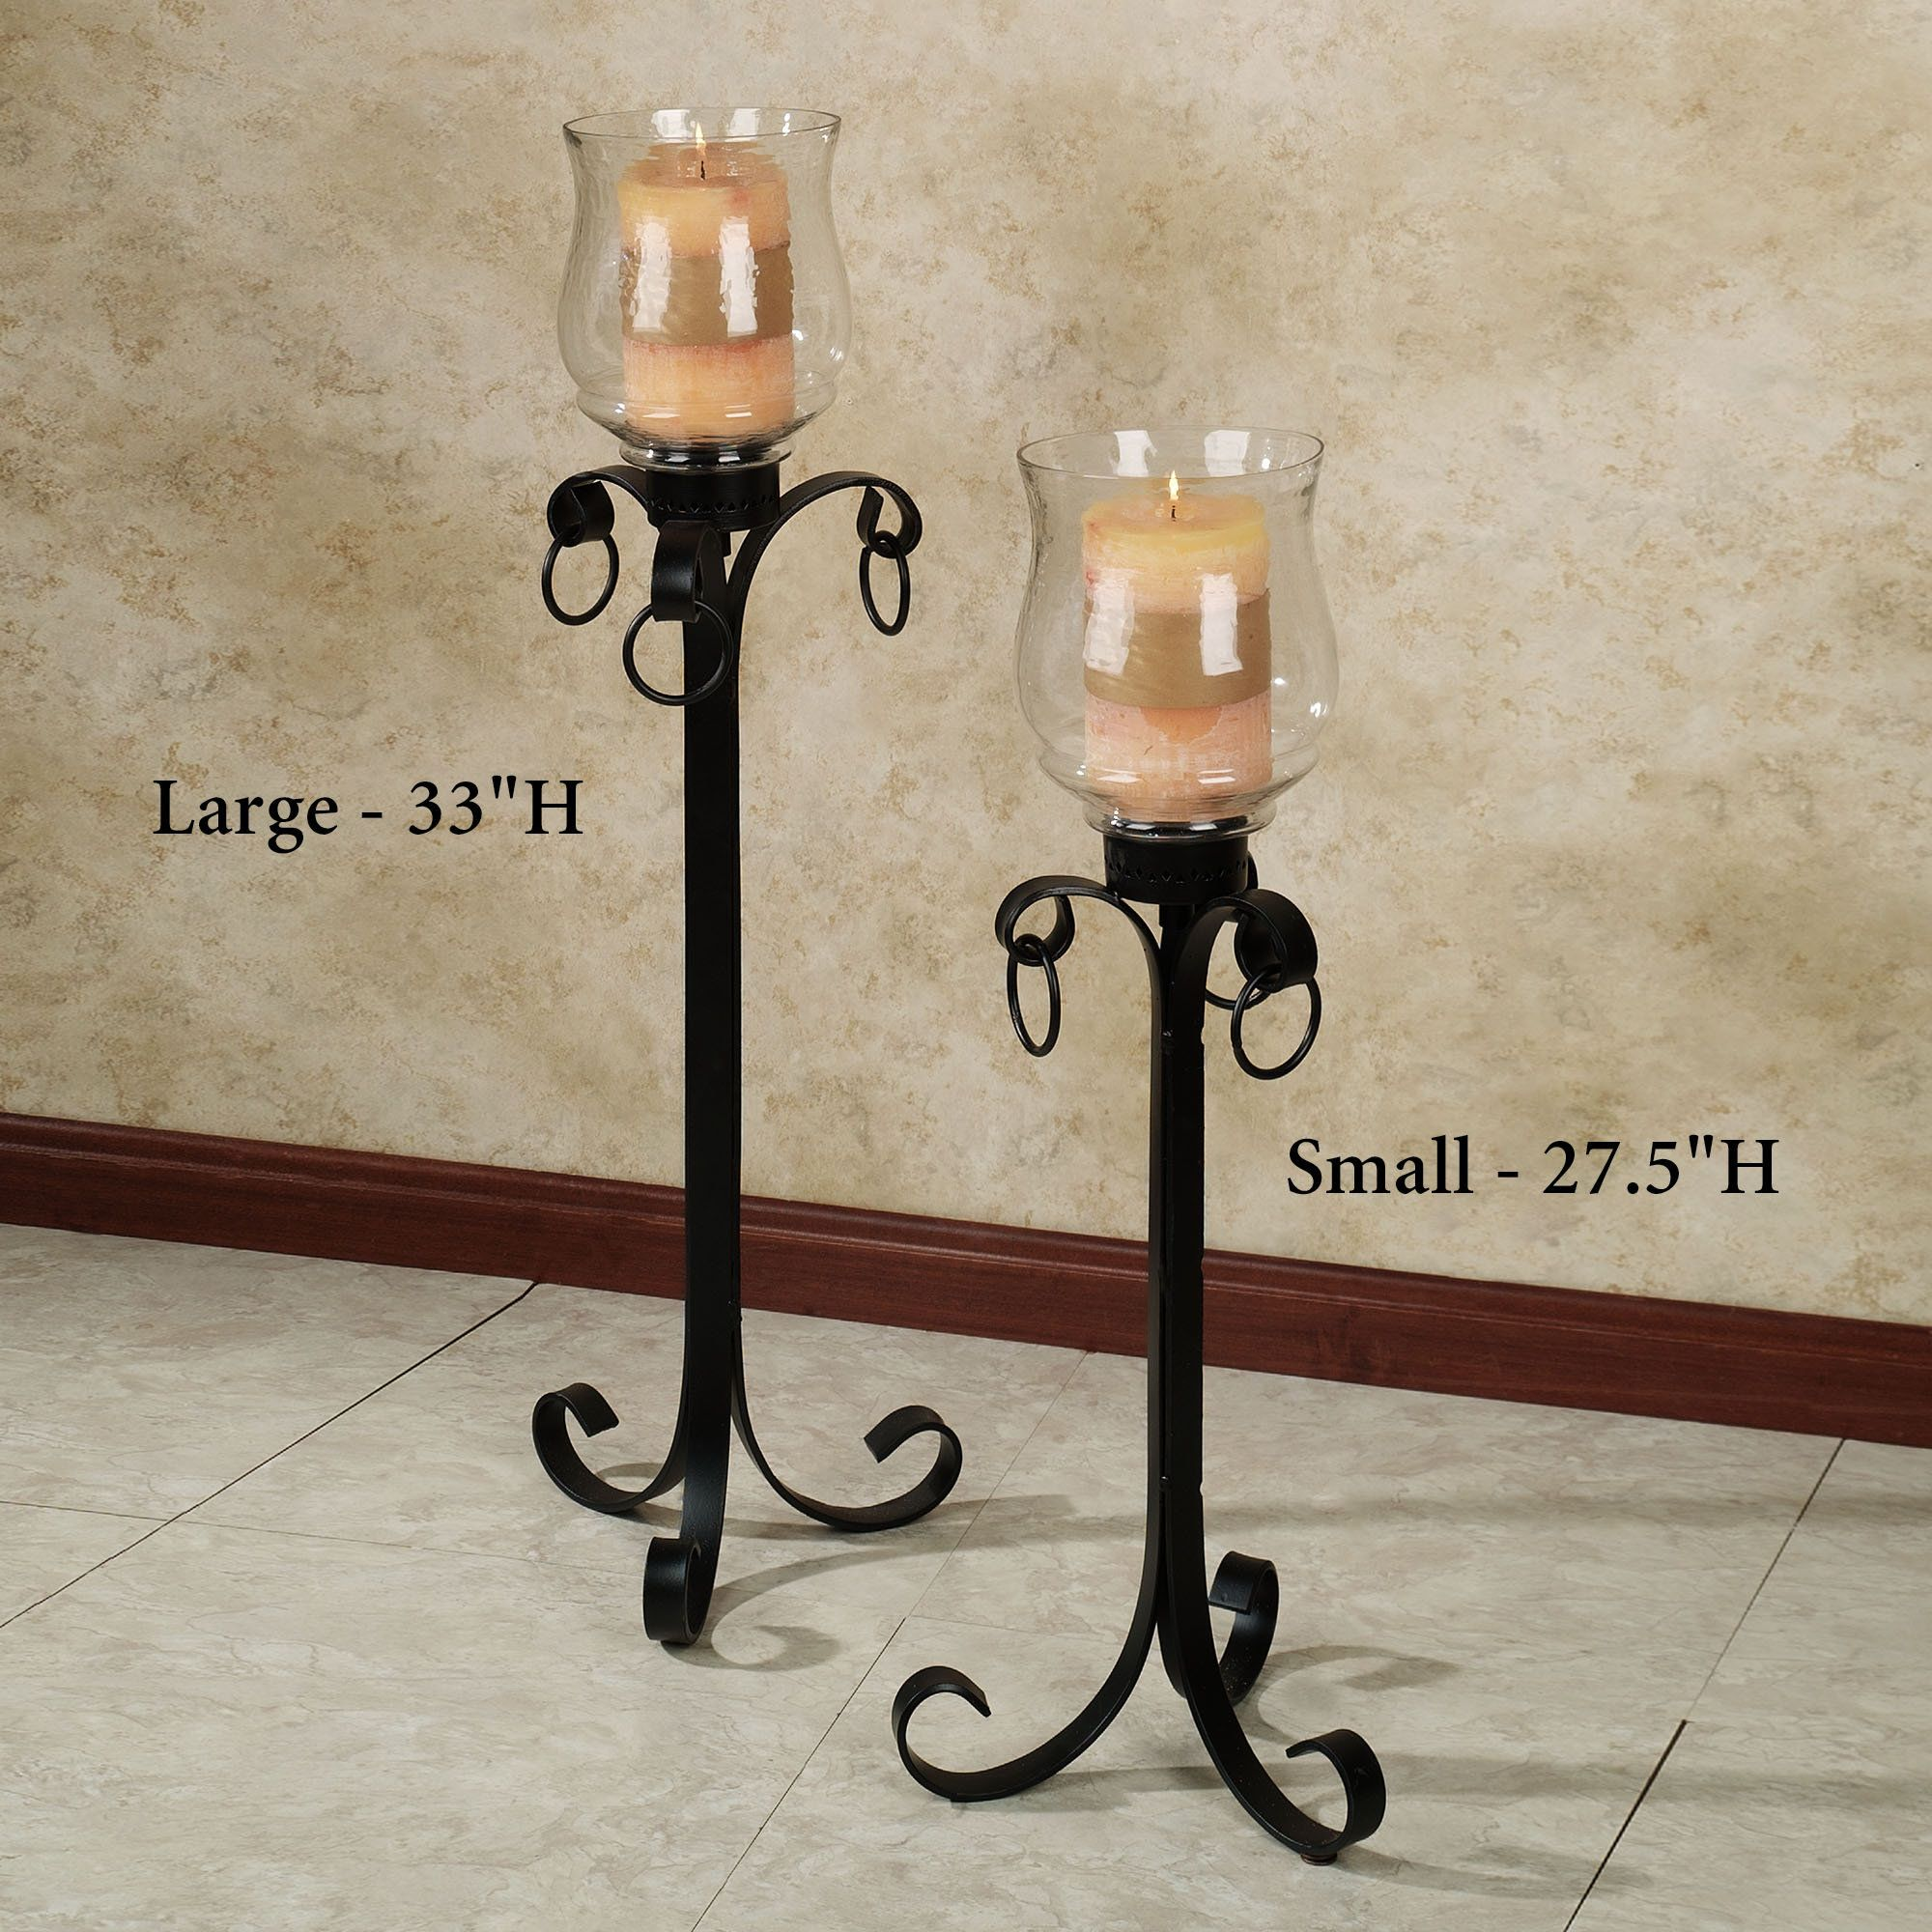 Tall Candle Holders for Fireplace | Fireplace | Pinterest ...